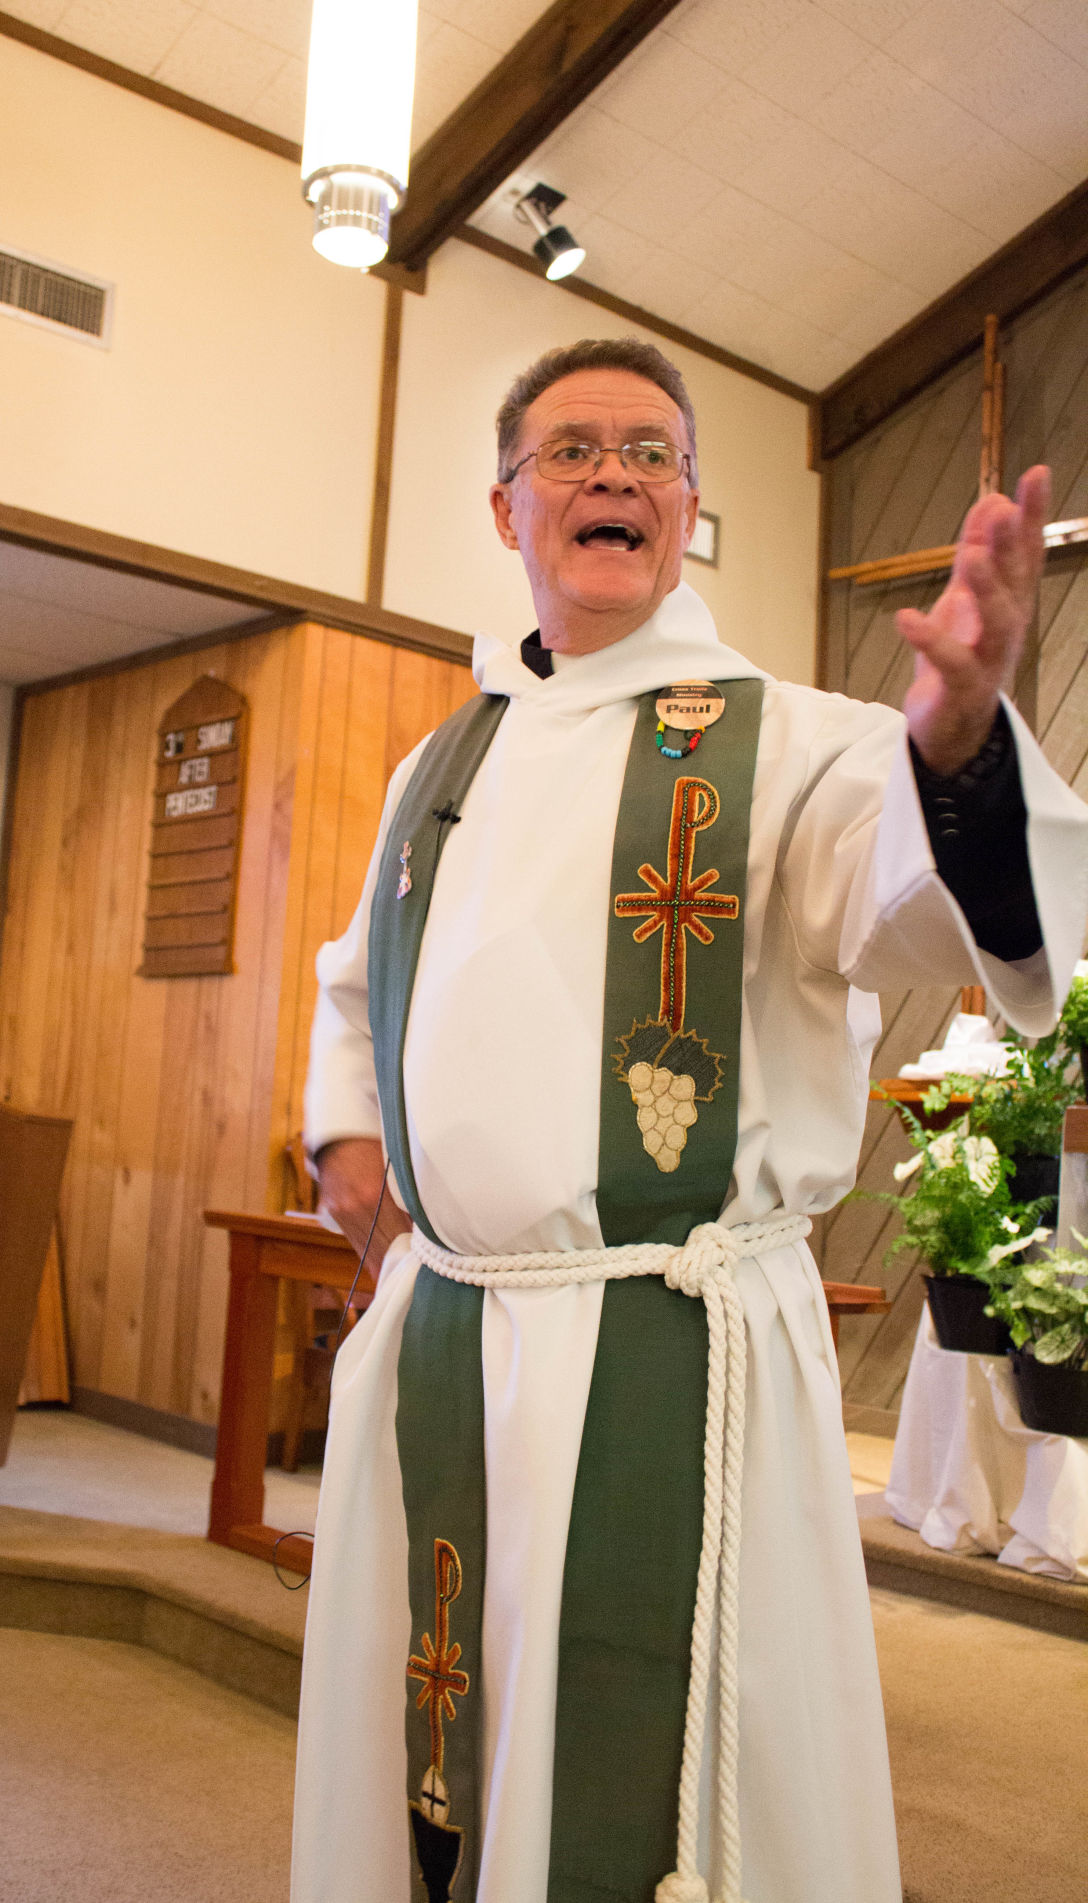 3 country churches surprise pastor